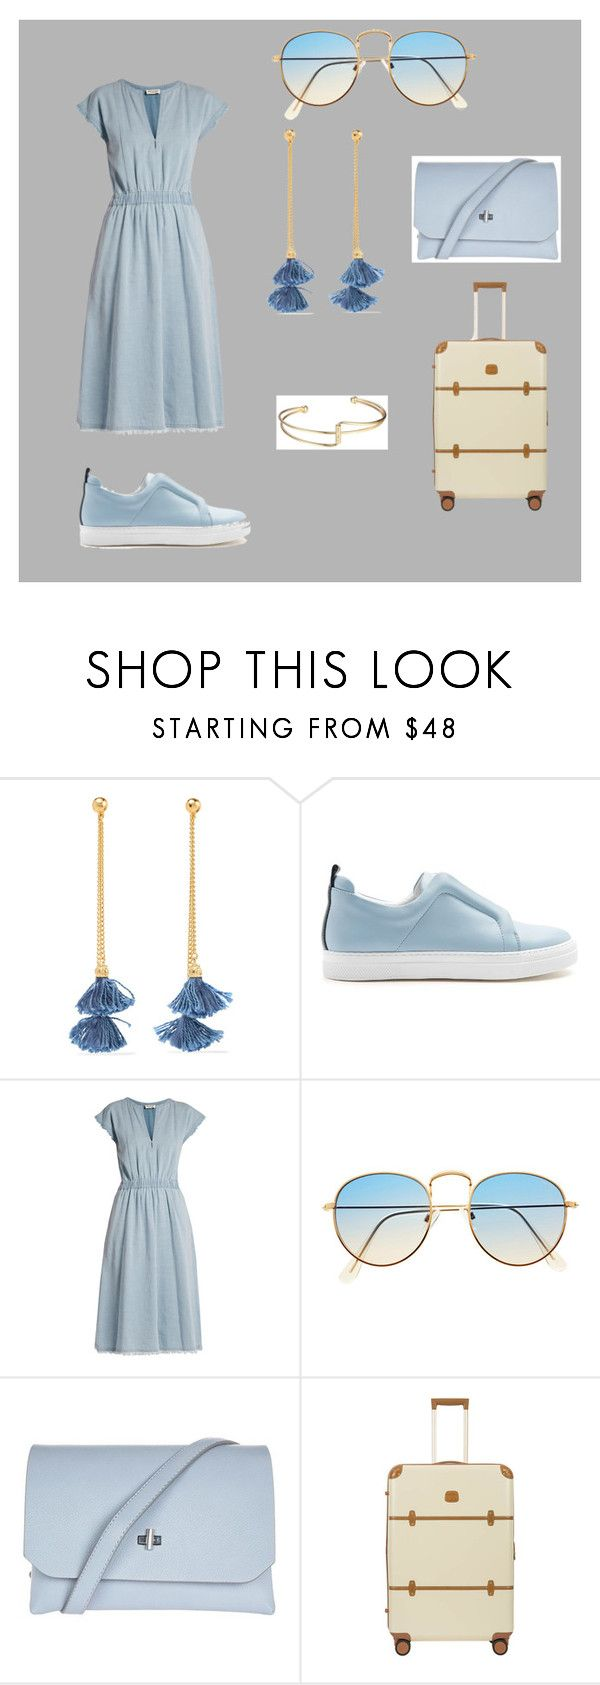 """""""Untitled #41"""" by misstad ❤ liked on Polyvore featuring Ben-Amun, Pierre Hardy, MASSCOB, Topshop and Bric's"""